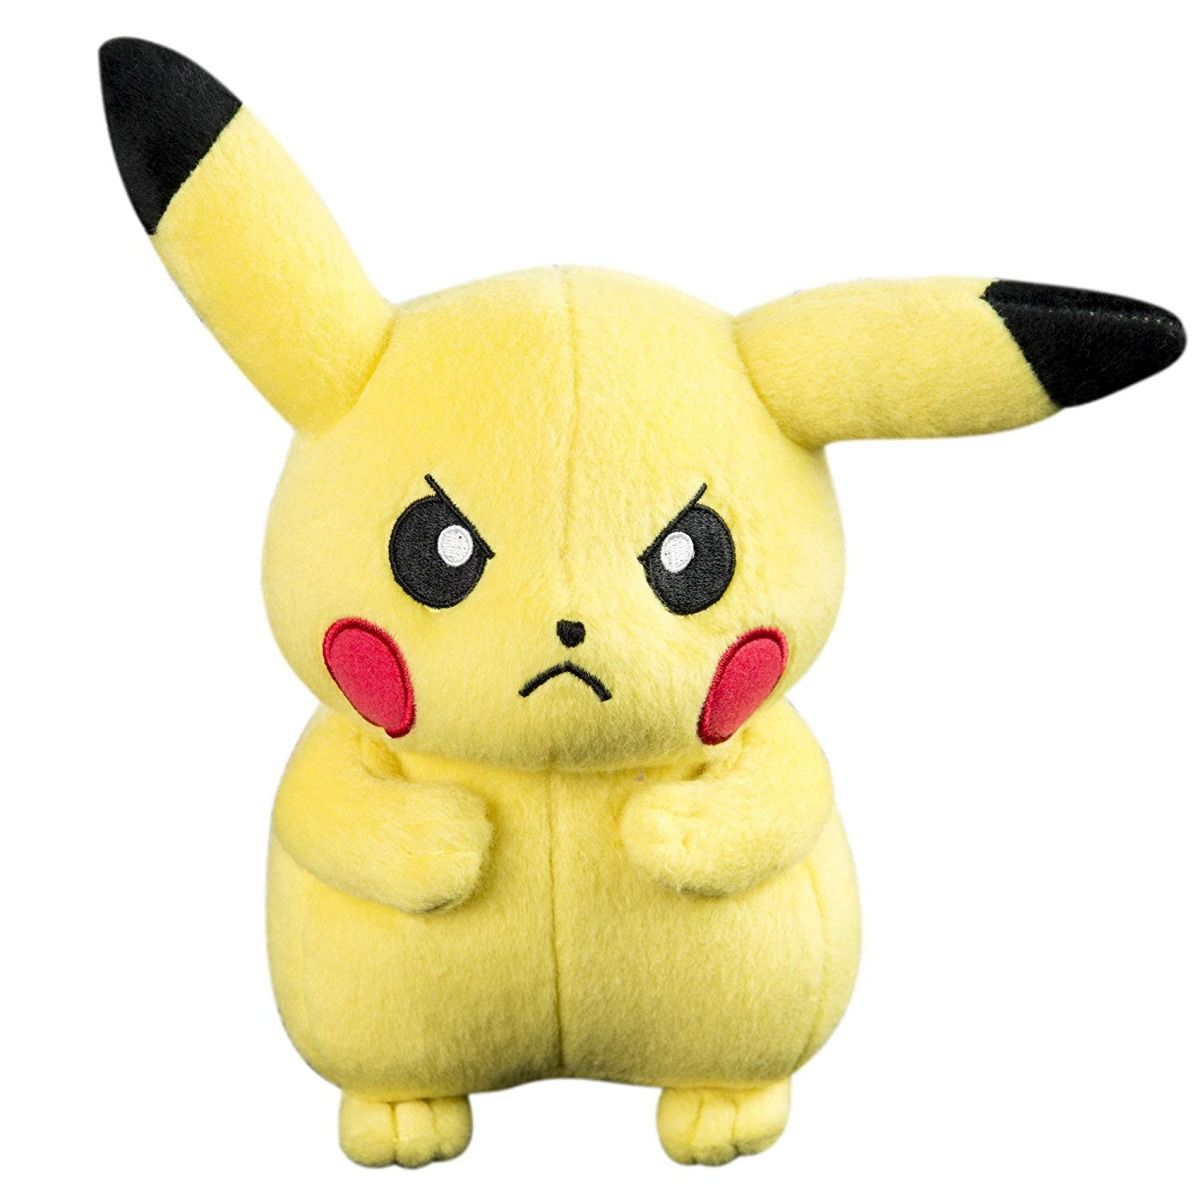 Pokemon Angry Pikachu Plush Toy